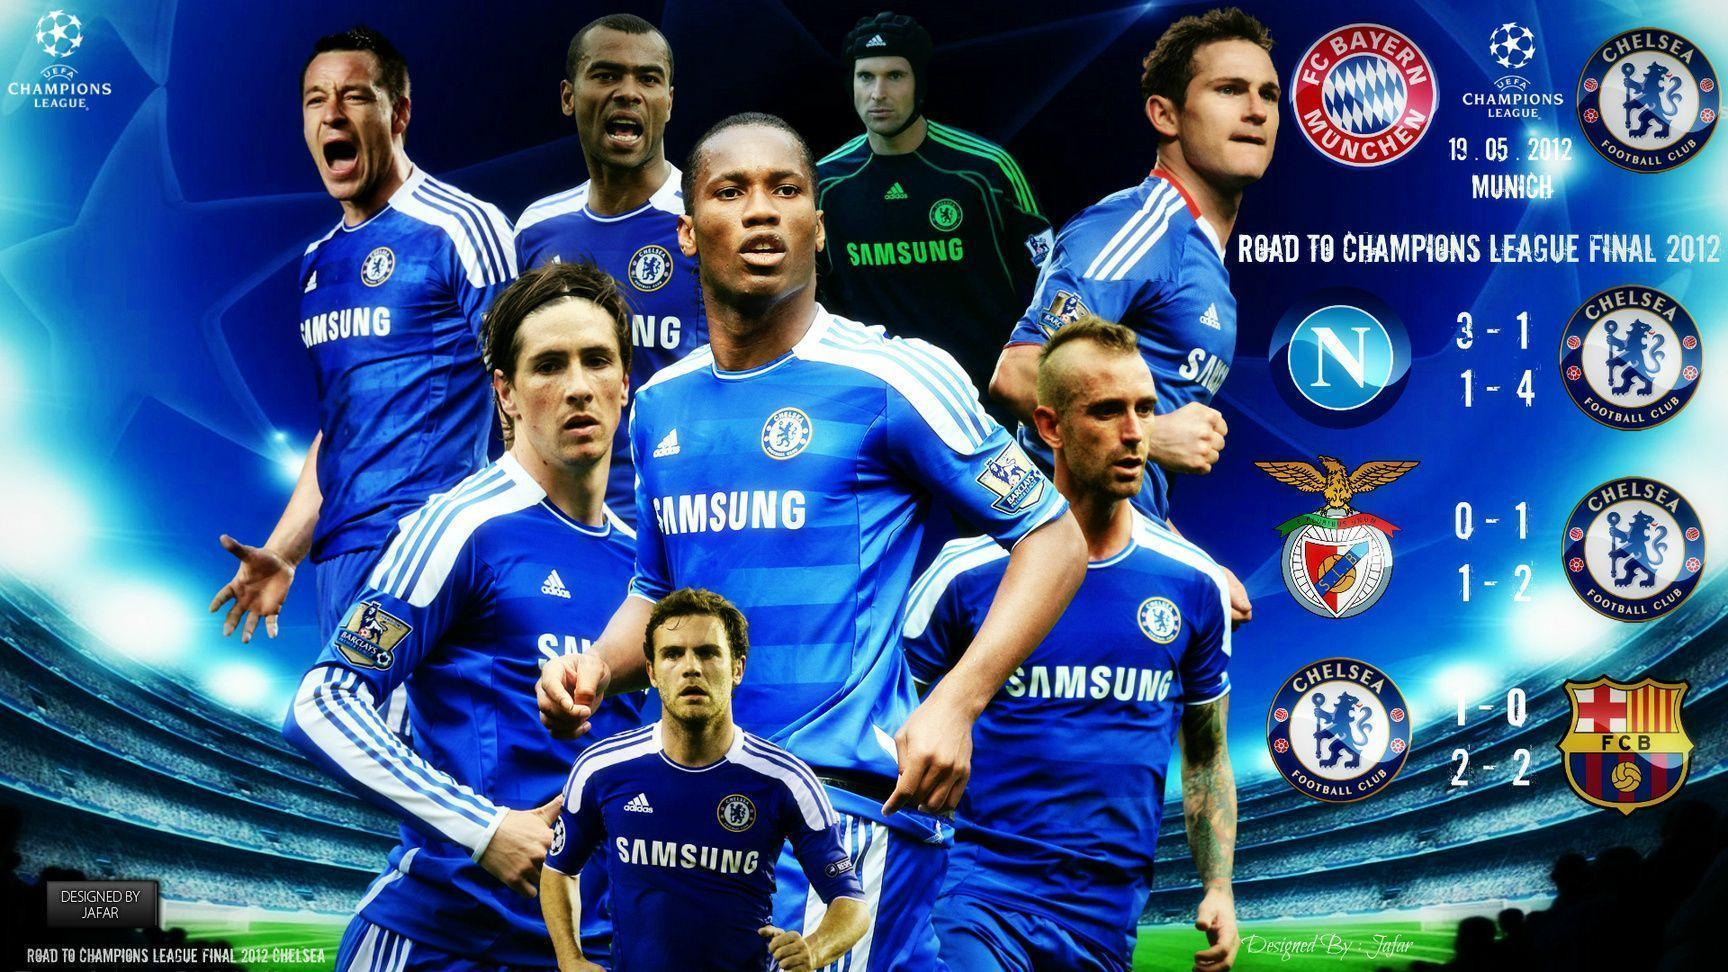 Champions League Winners Wallpapers - Wallpaper Cave